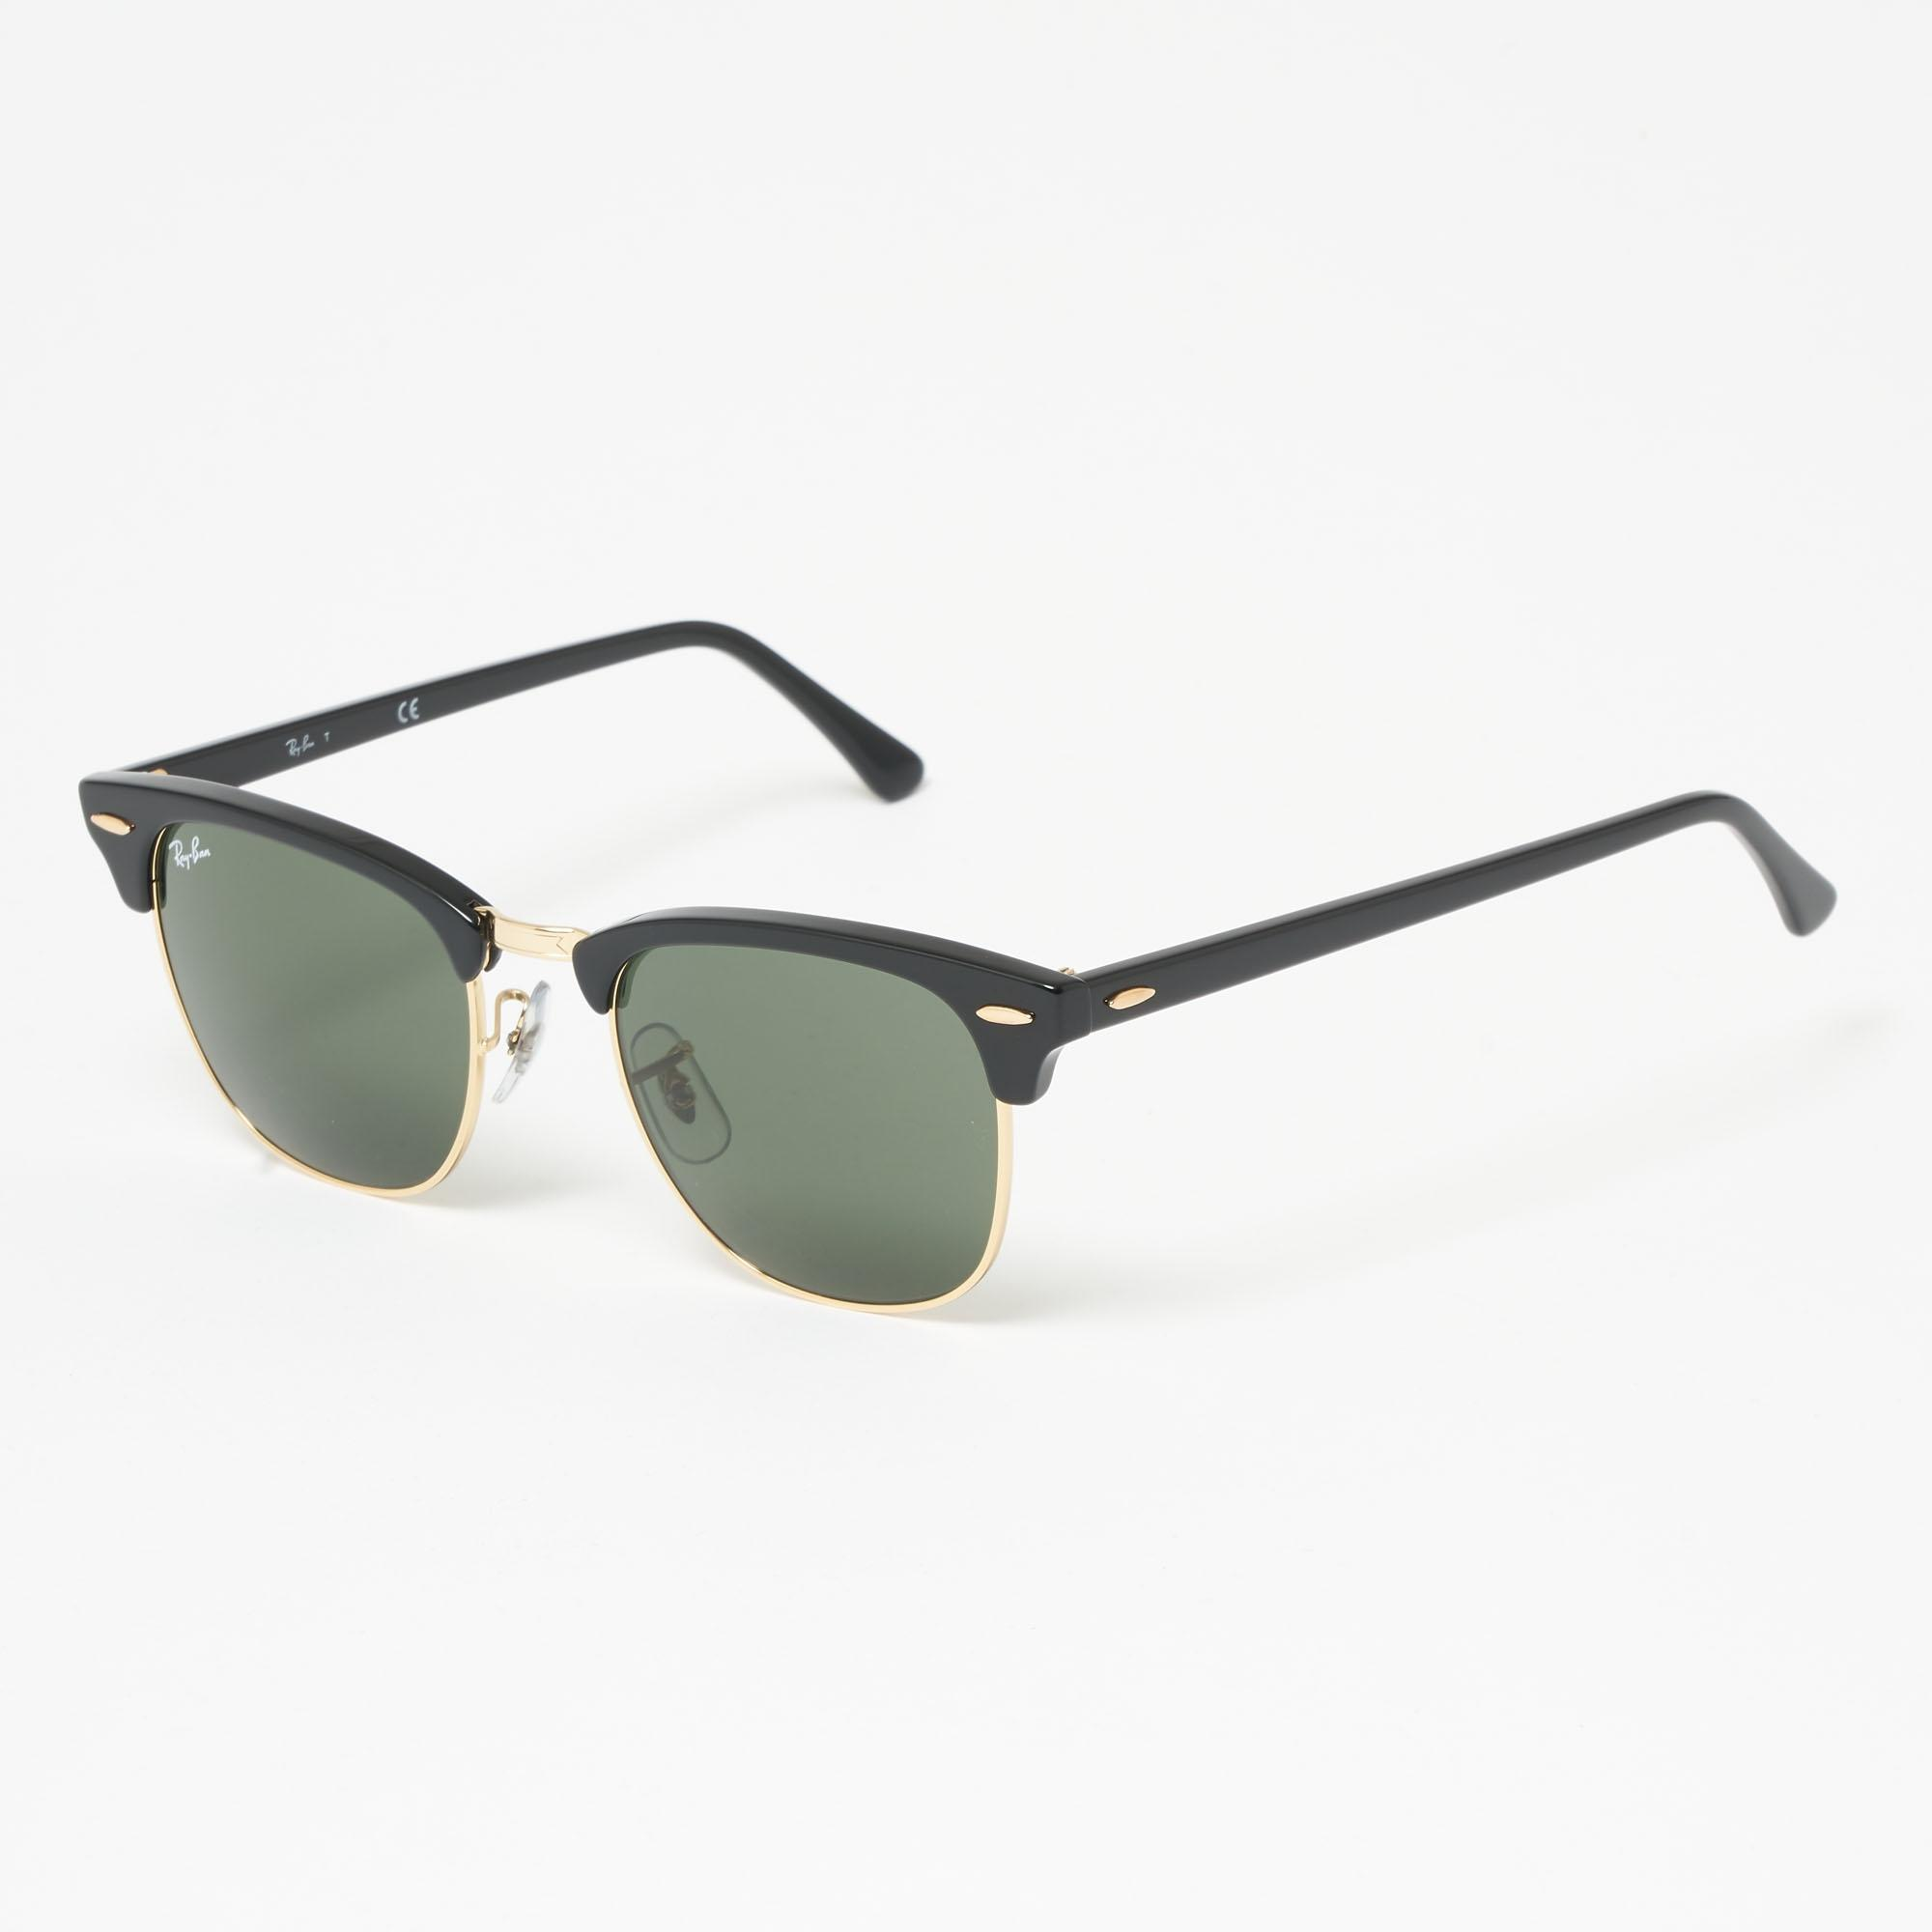 a9e76f8889 Ray-Ban. Men s Black Clubround Classic Sunglasses - Green Classic G-15  Lenses